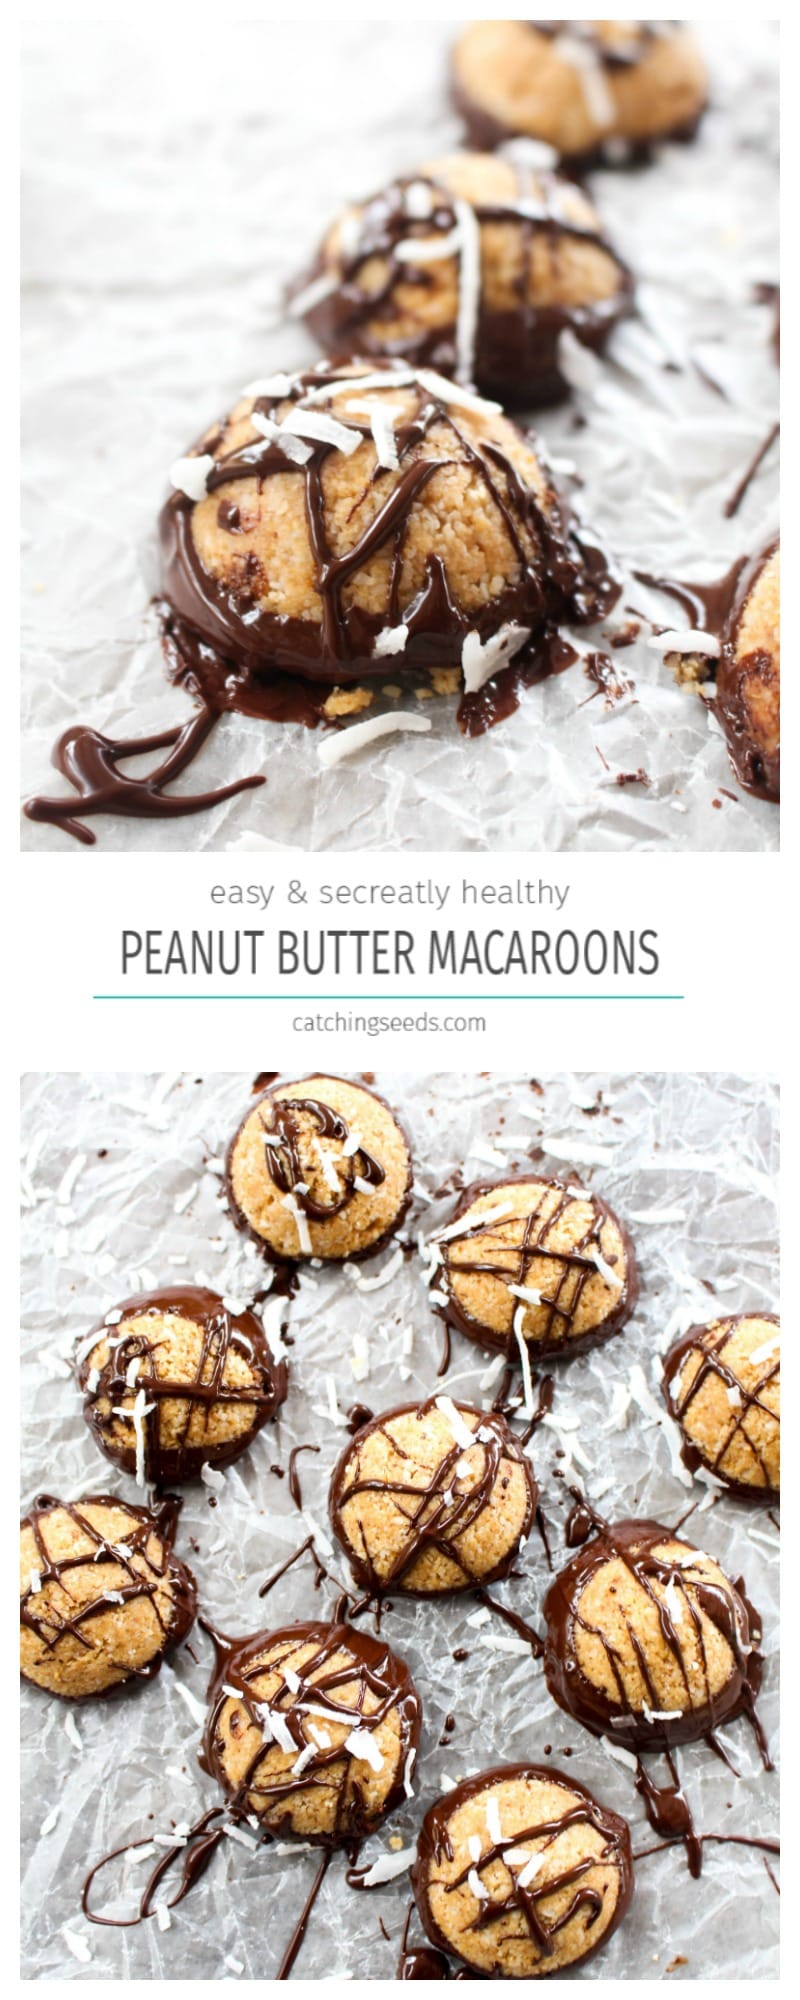 You'll never believe these peanut butter & chocolate macaroons recipe is healthy! Vegan, paleo, gluten-free &dairy-free!